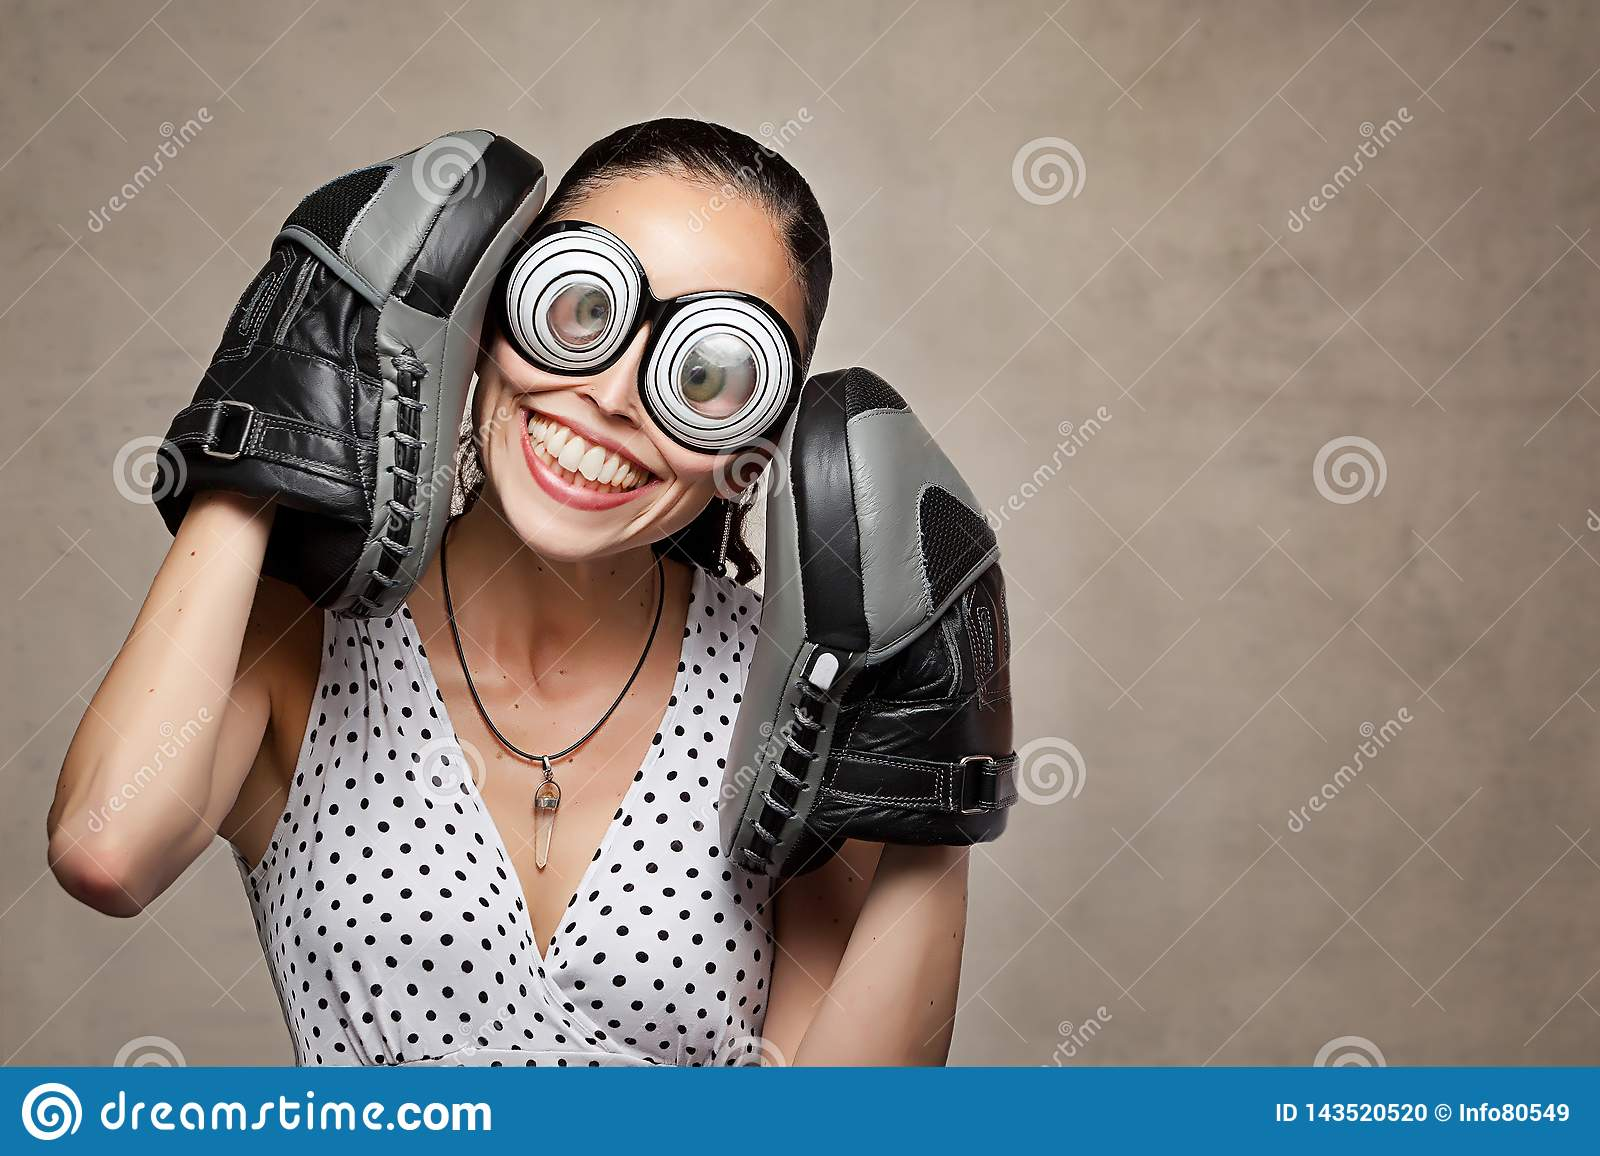 Funny crazy woman with big eyes, glasses and boxing gloves